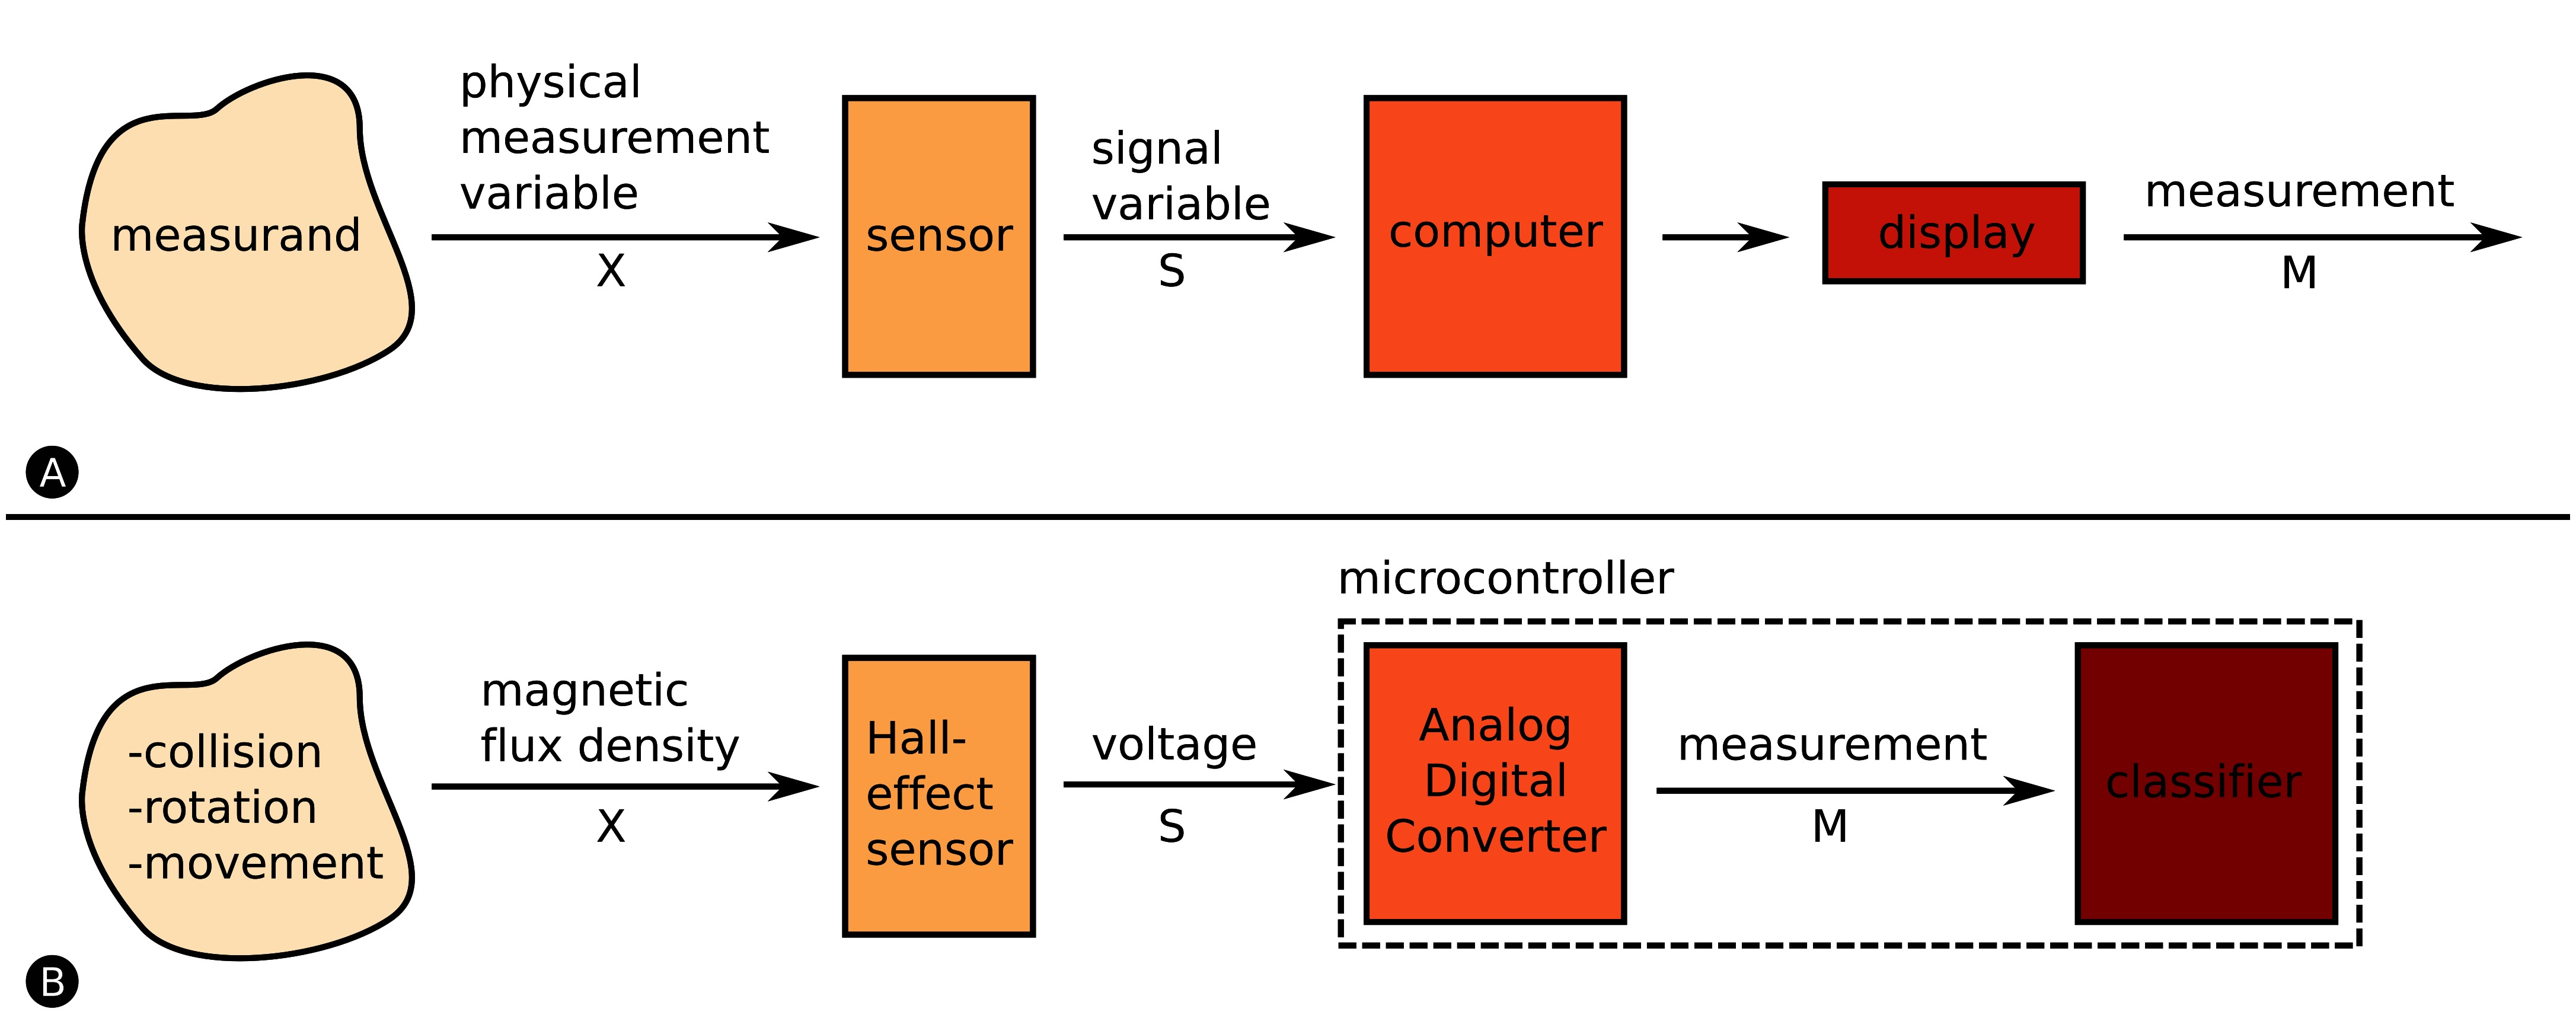 Frontiers Multi Functional Sensing For Swarm Robots Using Time Typical Hall Effect Sensor Wiring Details Image